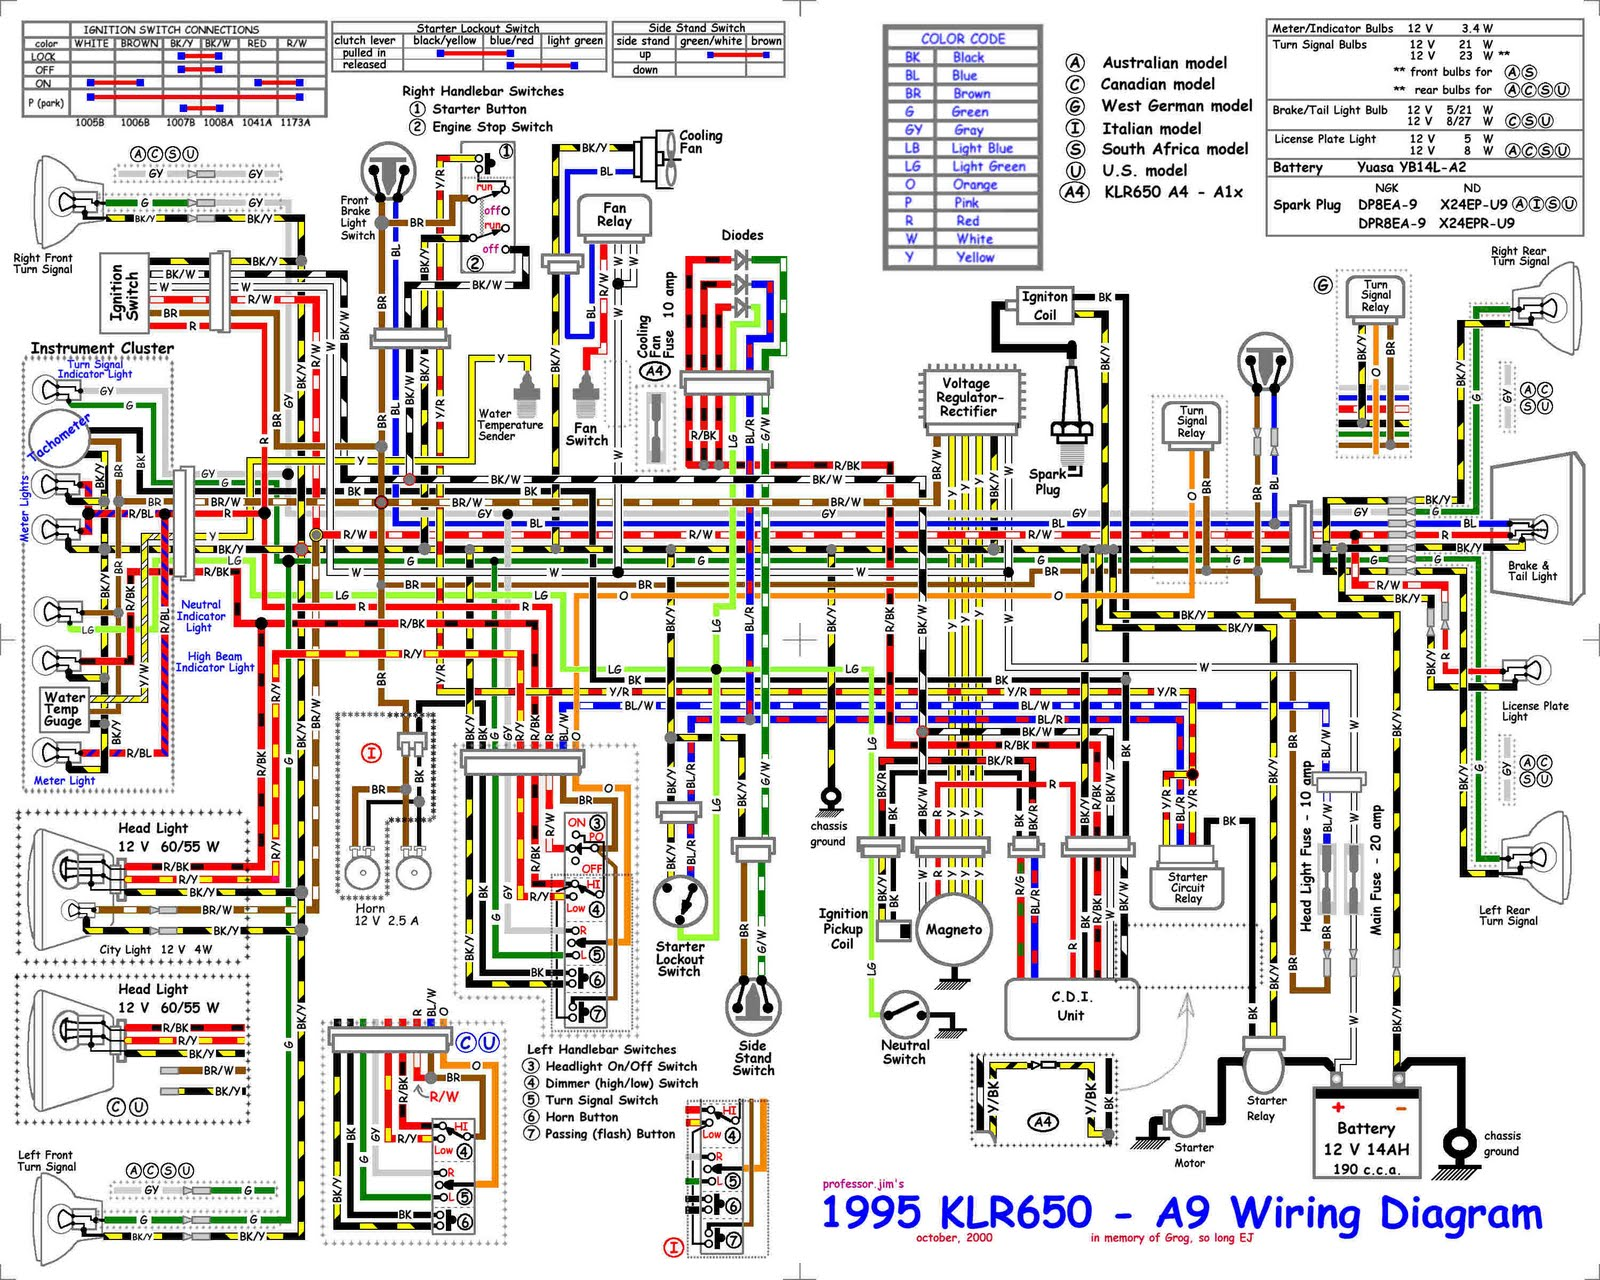 1974 monte carlo wiring diagram 99 honda cr v wiring diagram readingrat net wiring diagram for 1987 monte carlo at mifinder.co